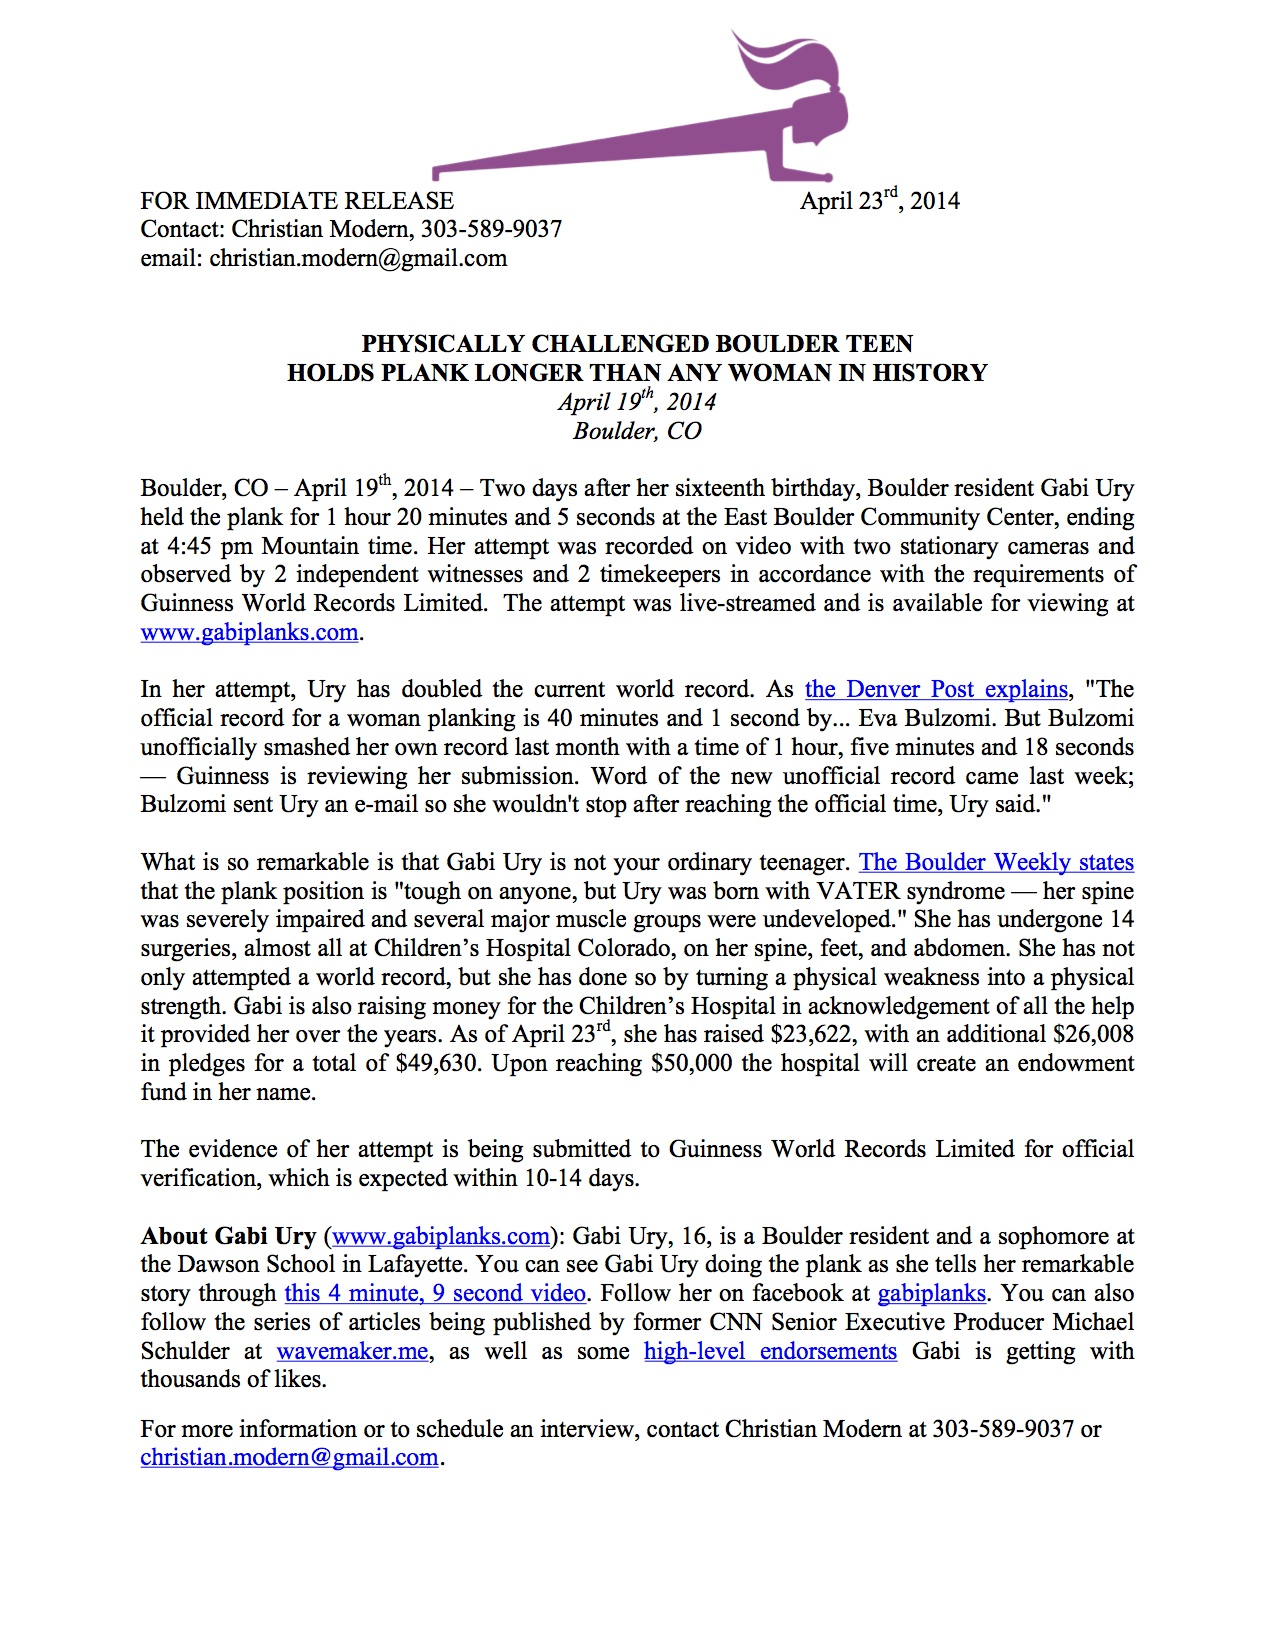 Press Release from 4:23:2014